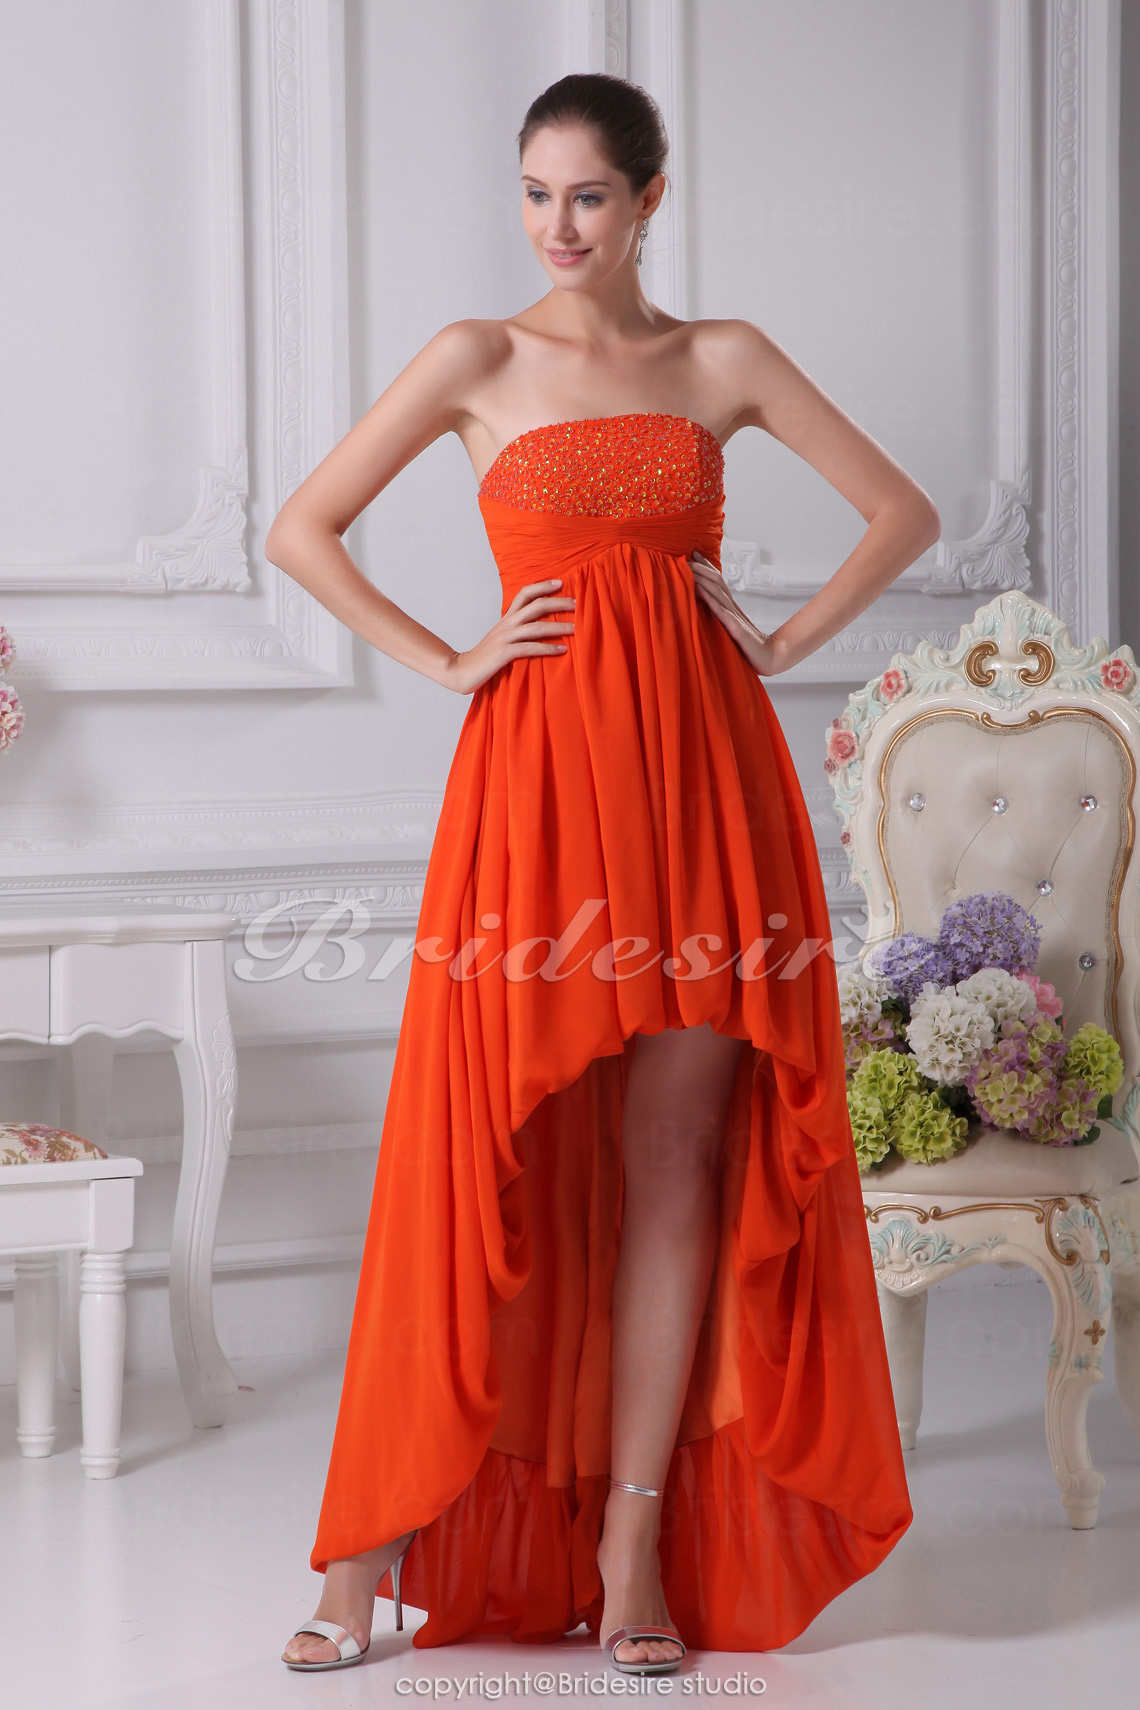 A-line Strapless Asymmetrical Short/Mini Sleeveless Chiffon Bridesmaid Dress